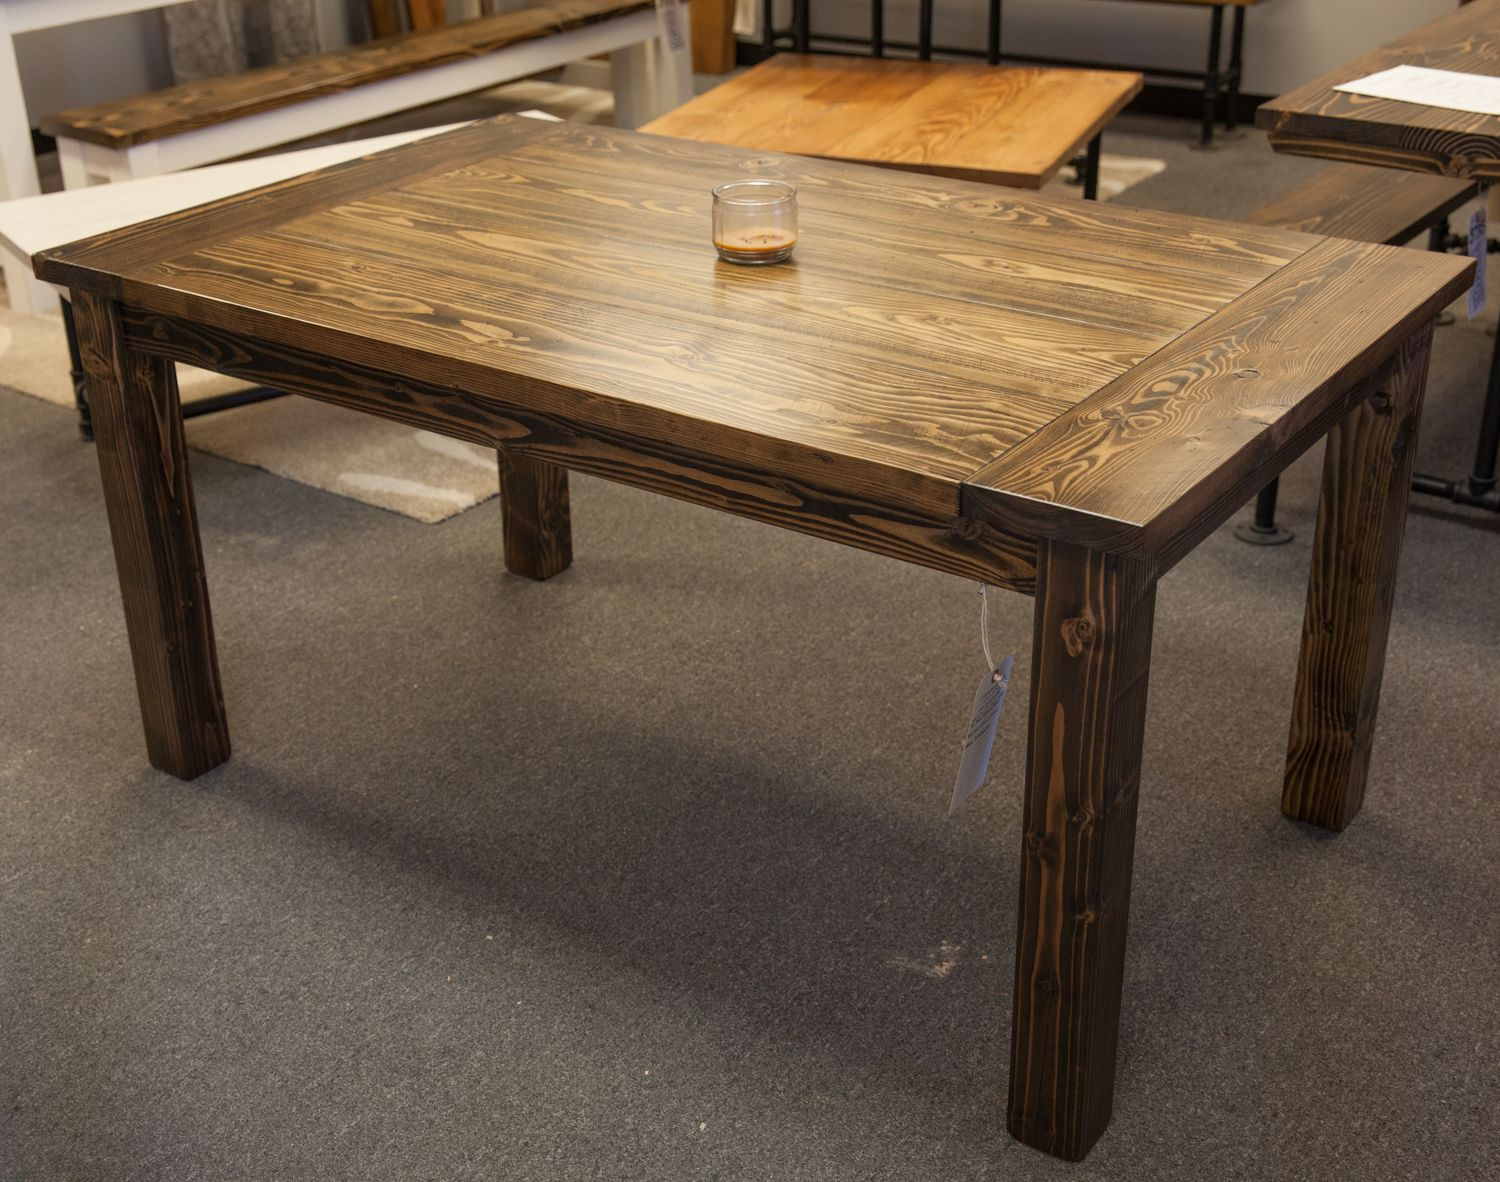 black walnut kitchen table design house faucets solid wood farmhouse with breadboards distressed